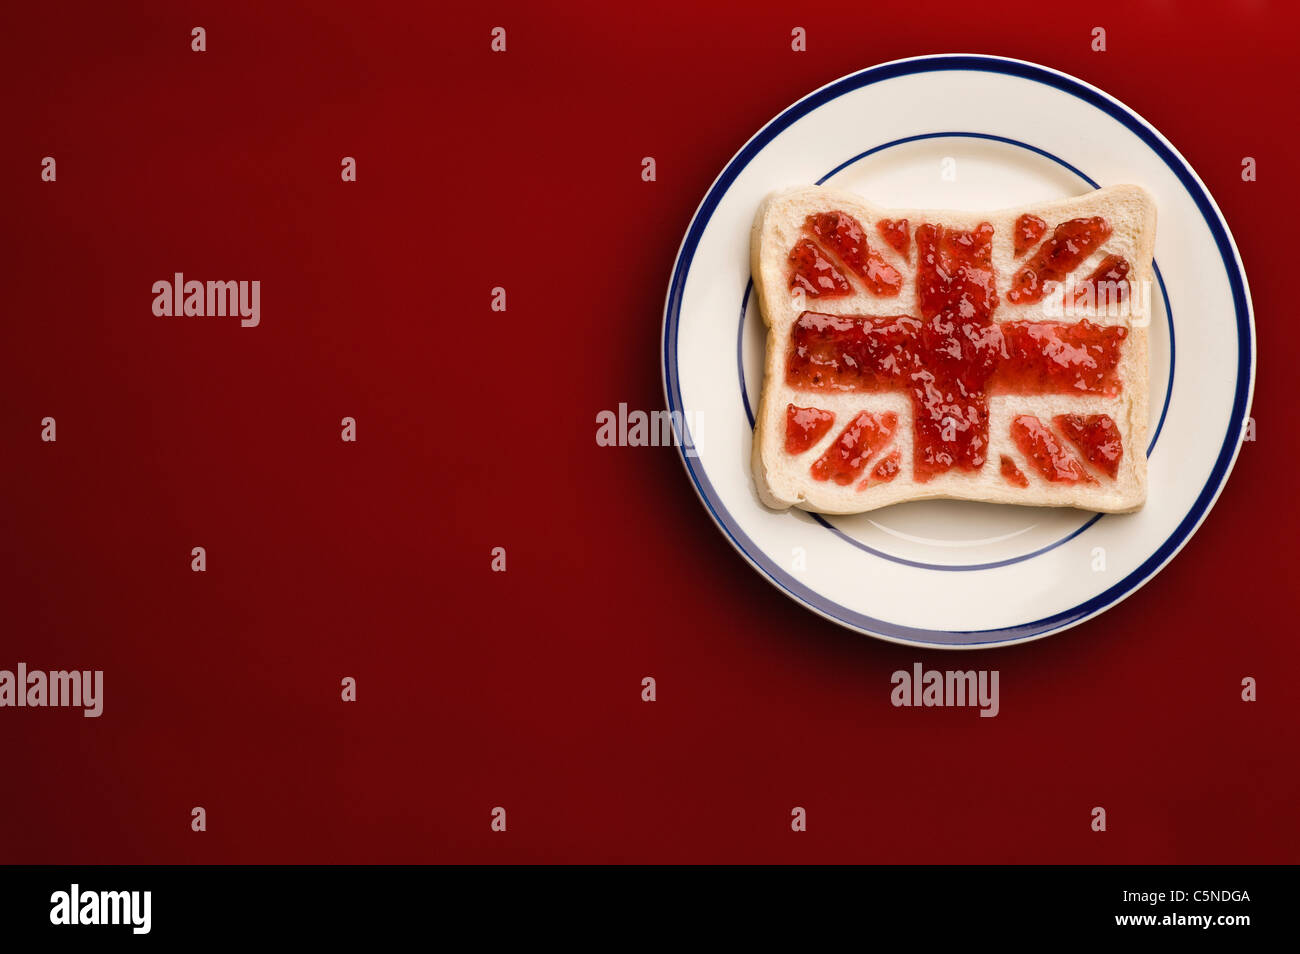 Une tranche de pain avec un Union Jack flag de la confiture de fraise Photo Stock